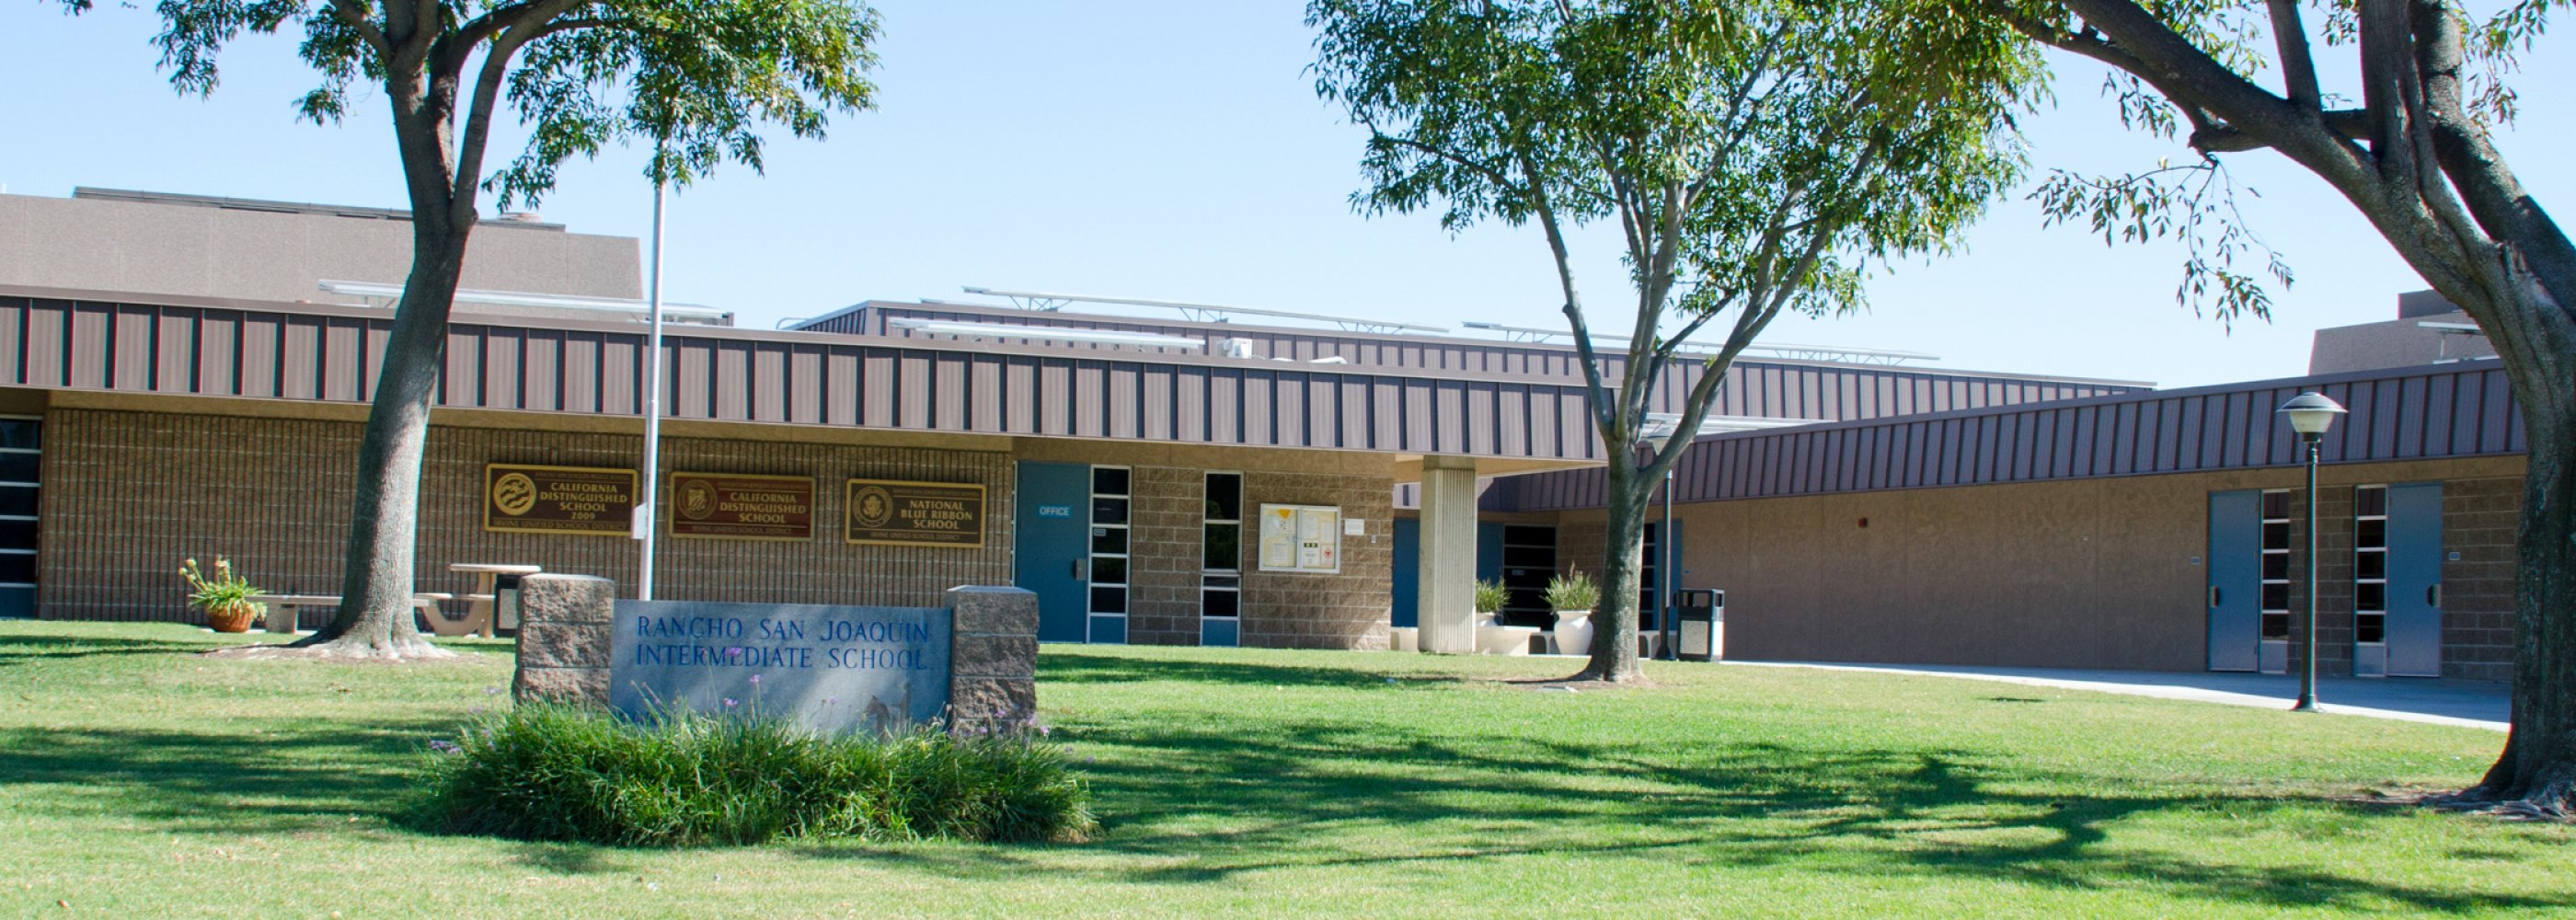 front of Ranch middle school